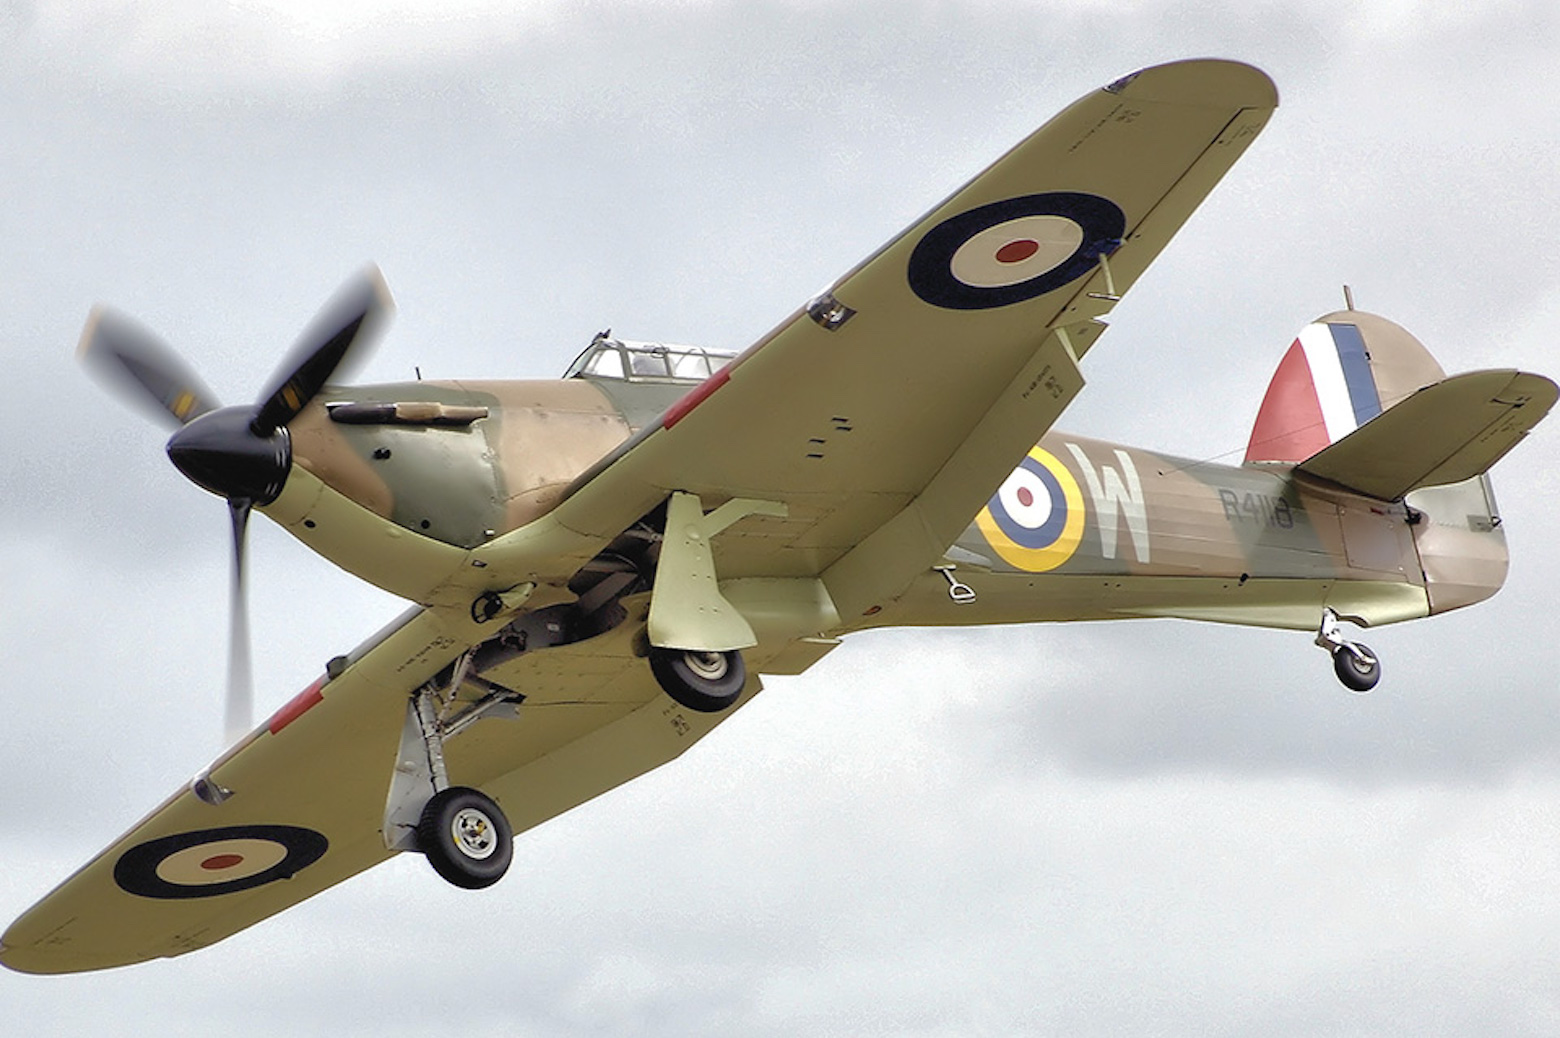 The Hawker Hurricane flying